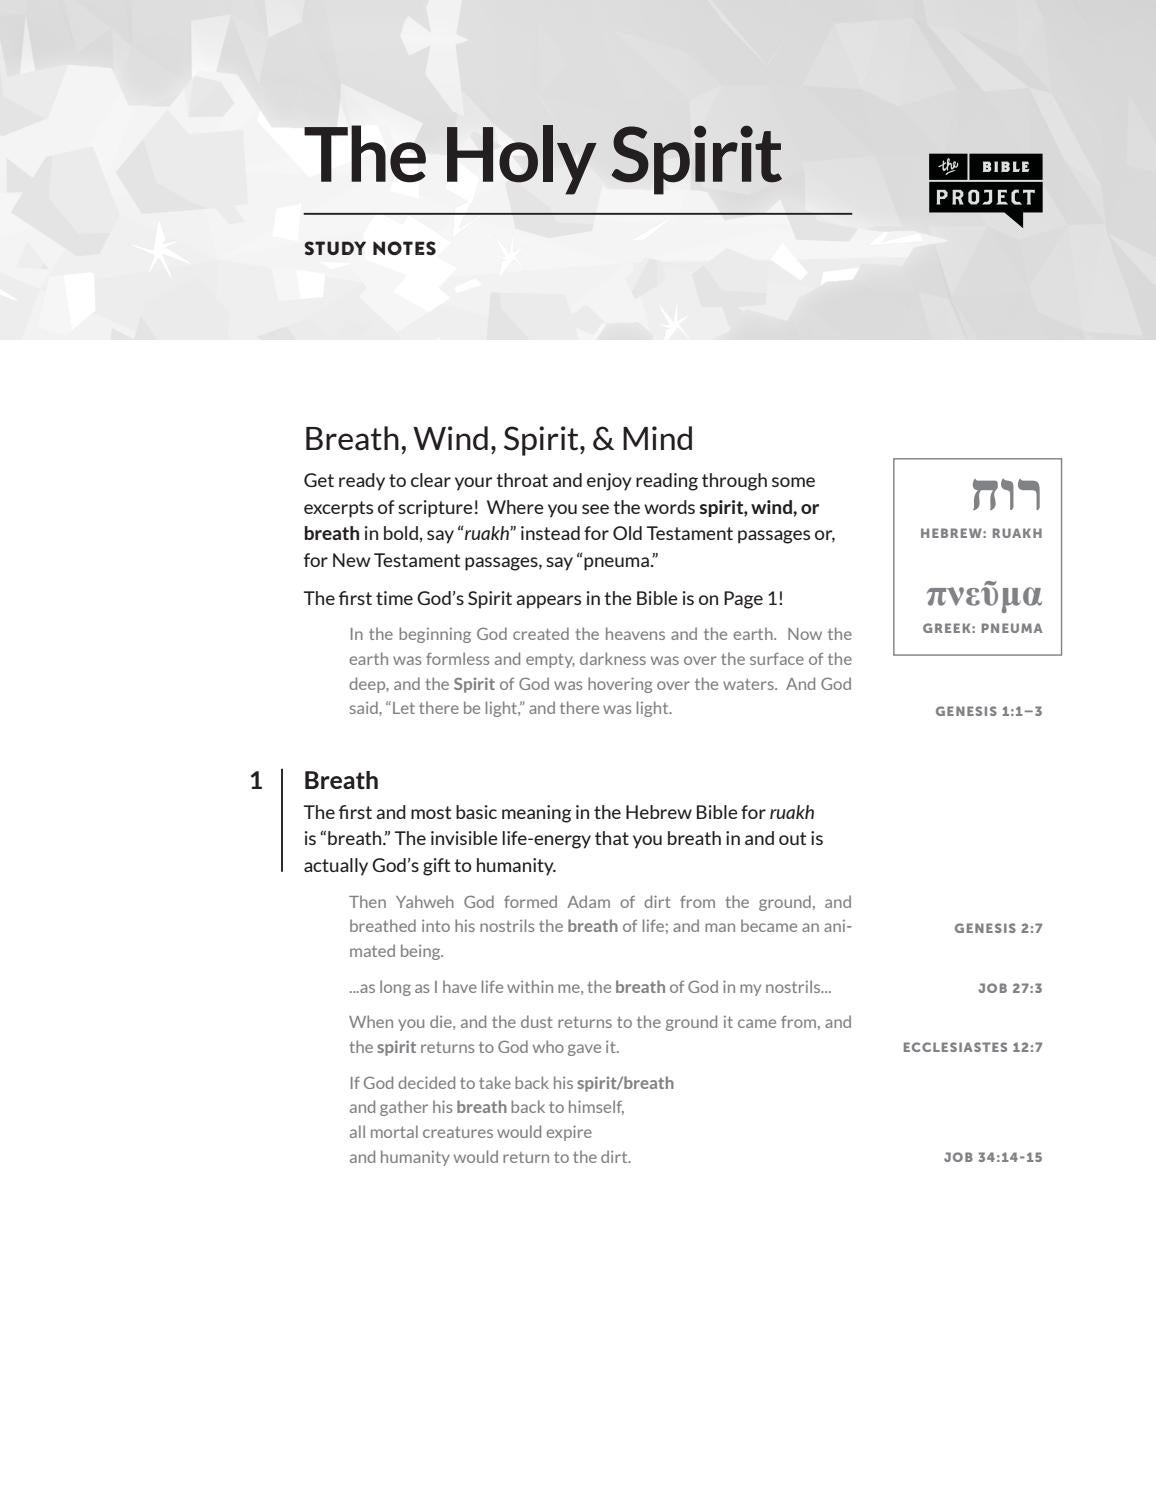 Tbp hsp studynotes 002 by I love reading - issuu